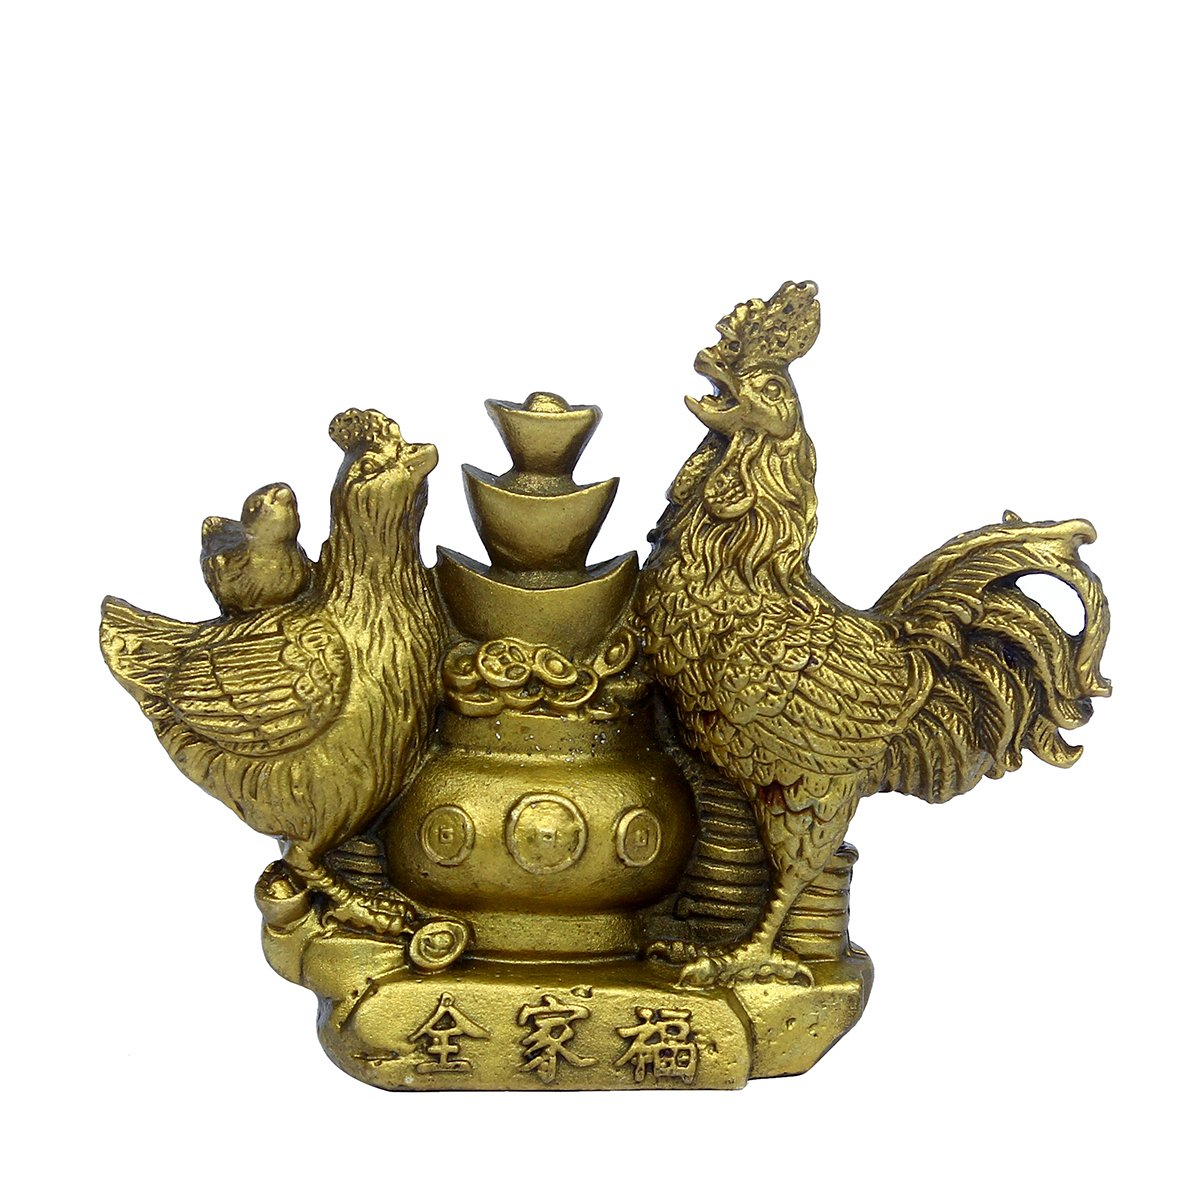 Chinese Fengshui Folk Handicraft Cock Copper Rooster Statue Sculpture Collectible Figurines (quanjiafu)